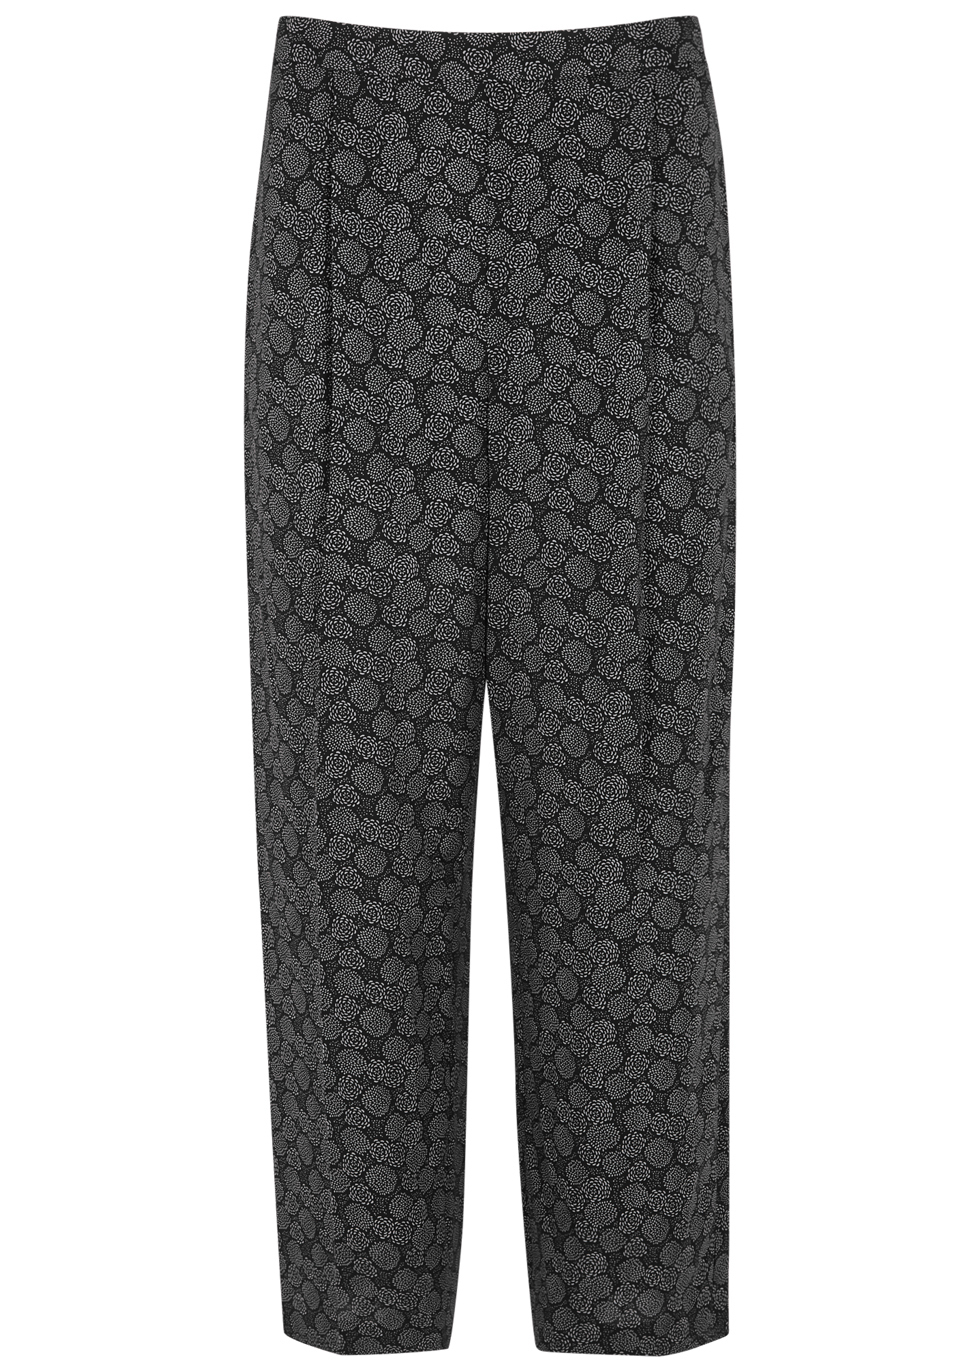 Black Printed Stretch Silk Trousers - style: palazzo; waist: mid/regular rise; secondary colour: mid grey; predominant colour: black; occasions: casual; length: calf length; fit: wide leg; pattern type: fabric; pattern: florals; texture group: woven light midweight; fibres: silk - stretch; multicoloured: multicoloured; season: a/w 2016; wardrobe: highlight